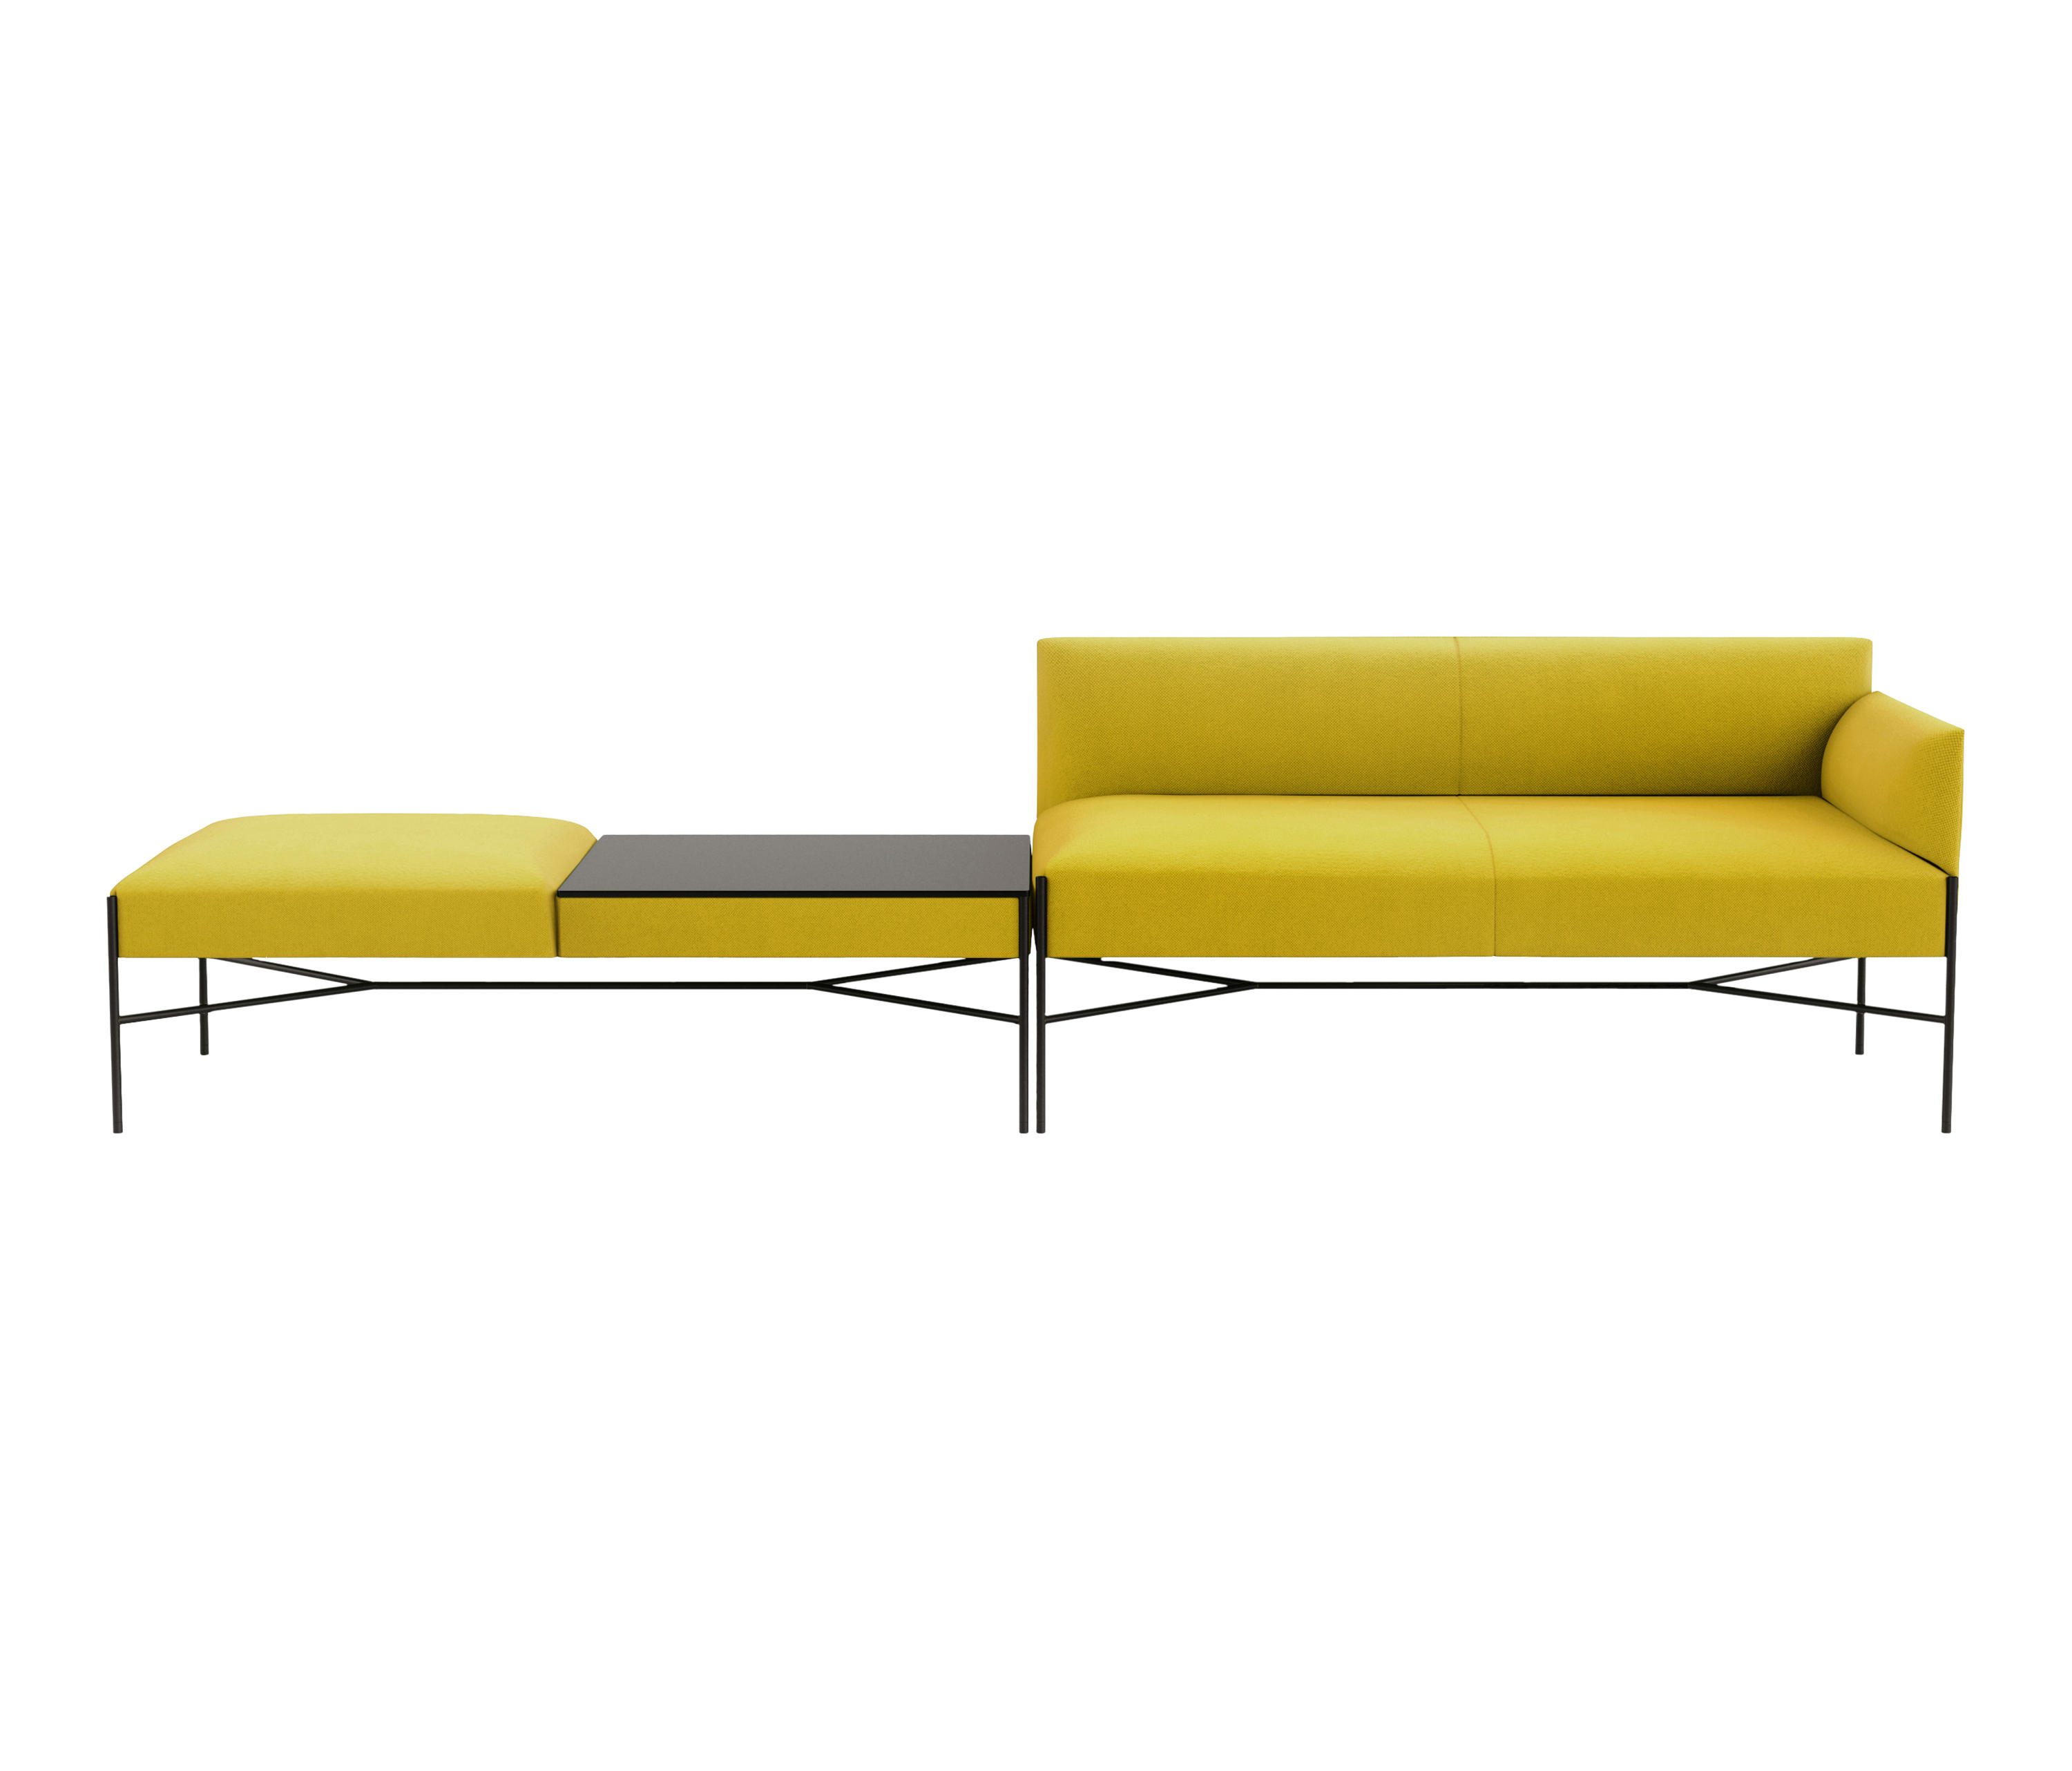 Chill out sofas from tacchini italia architonic - Chill out sofas ...